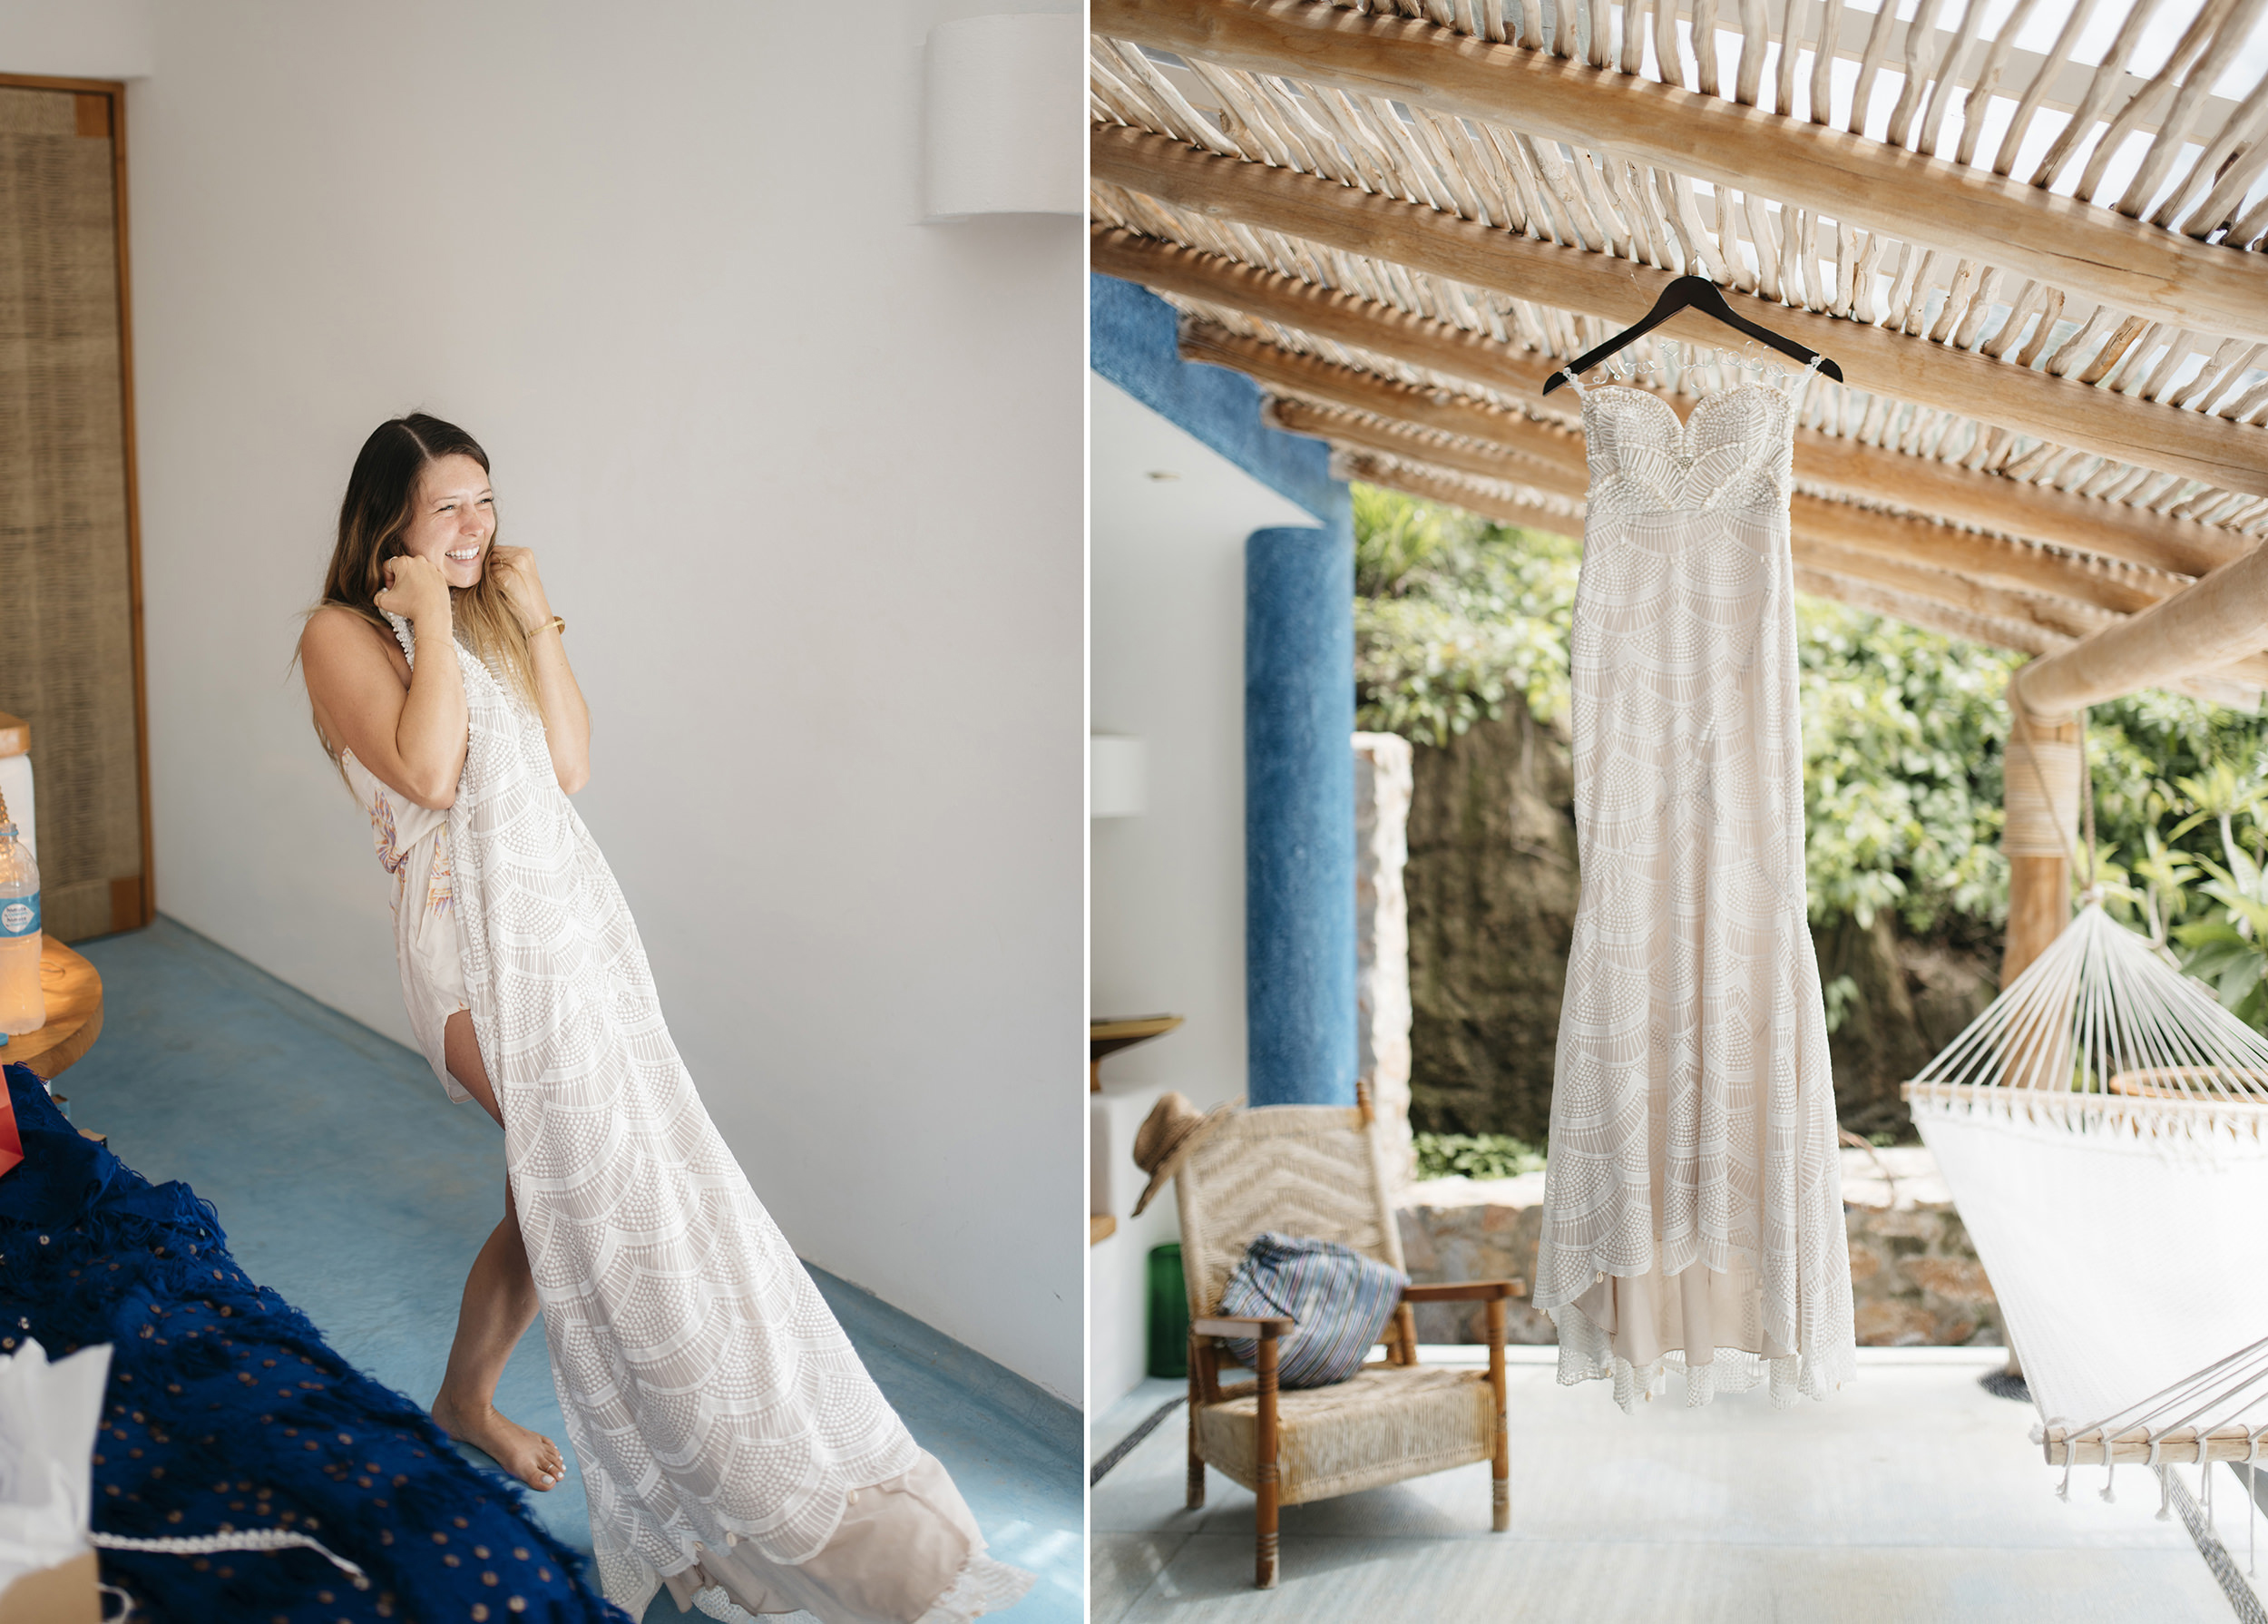 Bride loves her handmade wedding dress in Sayulita Mexico by Puerto Vallarta Destination Photographers Colby and Jess colbyandjess.com